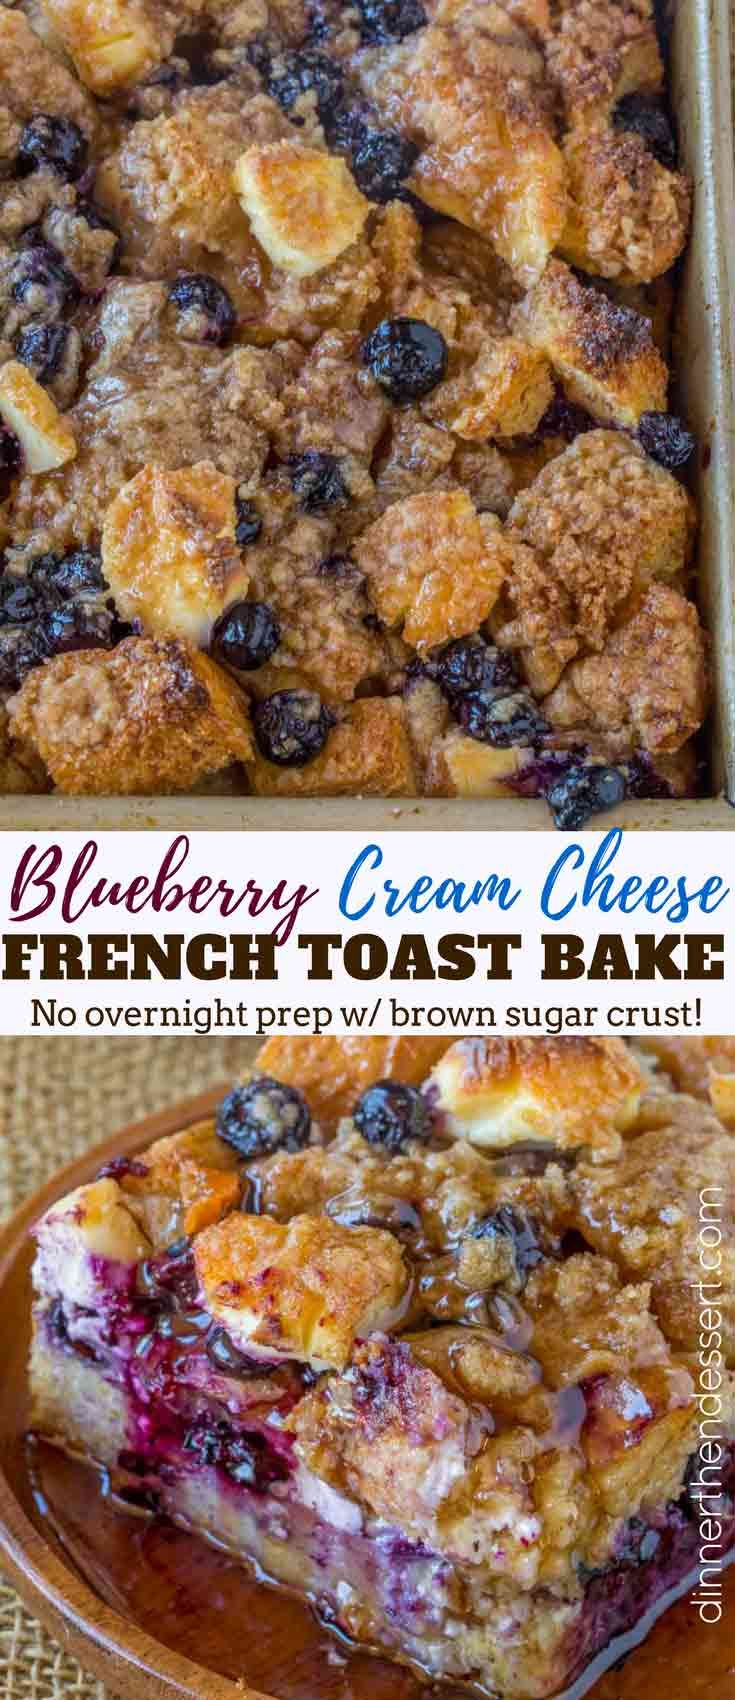 Blueberry Cream Cheese French Toast Bake without any overnight chilling is the perfect cross between a french toast bake and blueberry cream cheese danish.